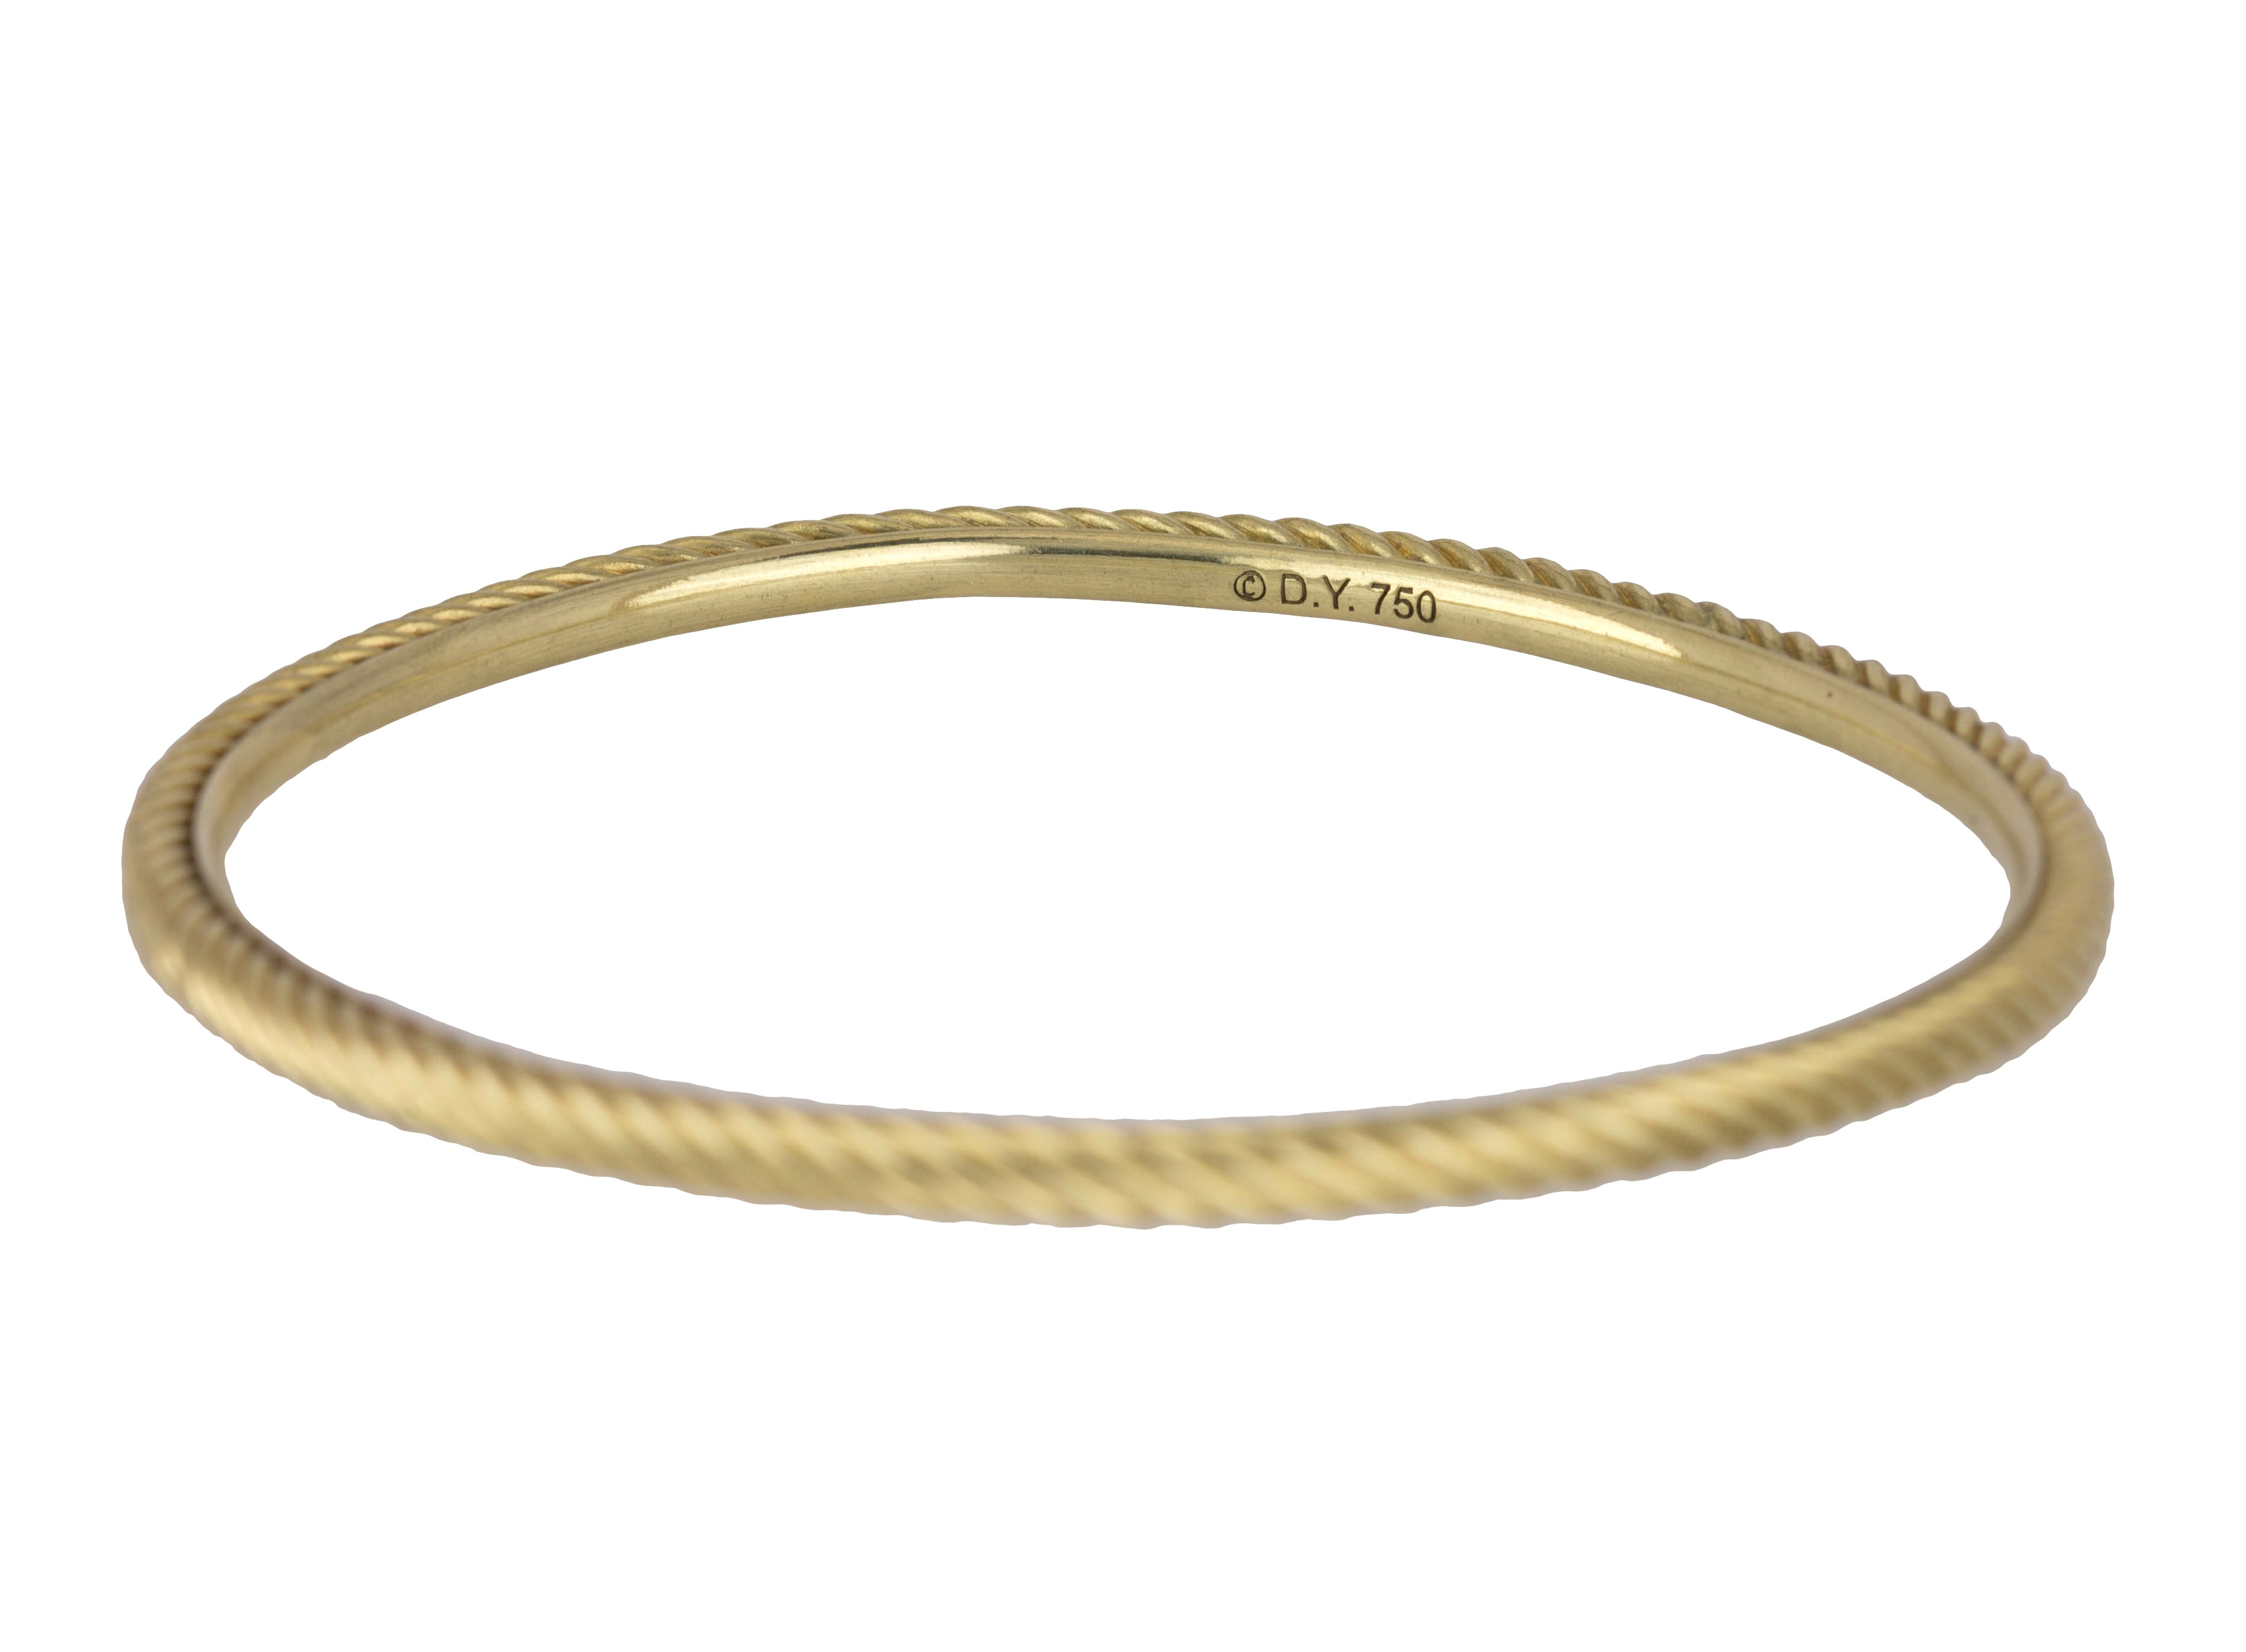 Authentic David Yurman 18K 750 Yellow Gold Cable Classic 3mm Bangle Bracelet